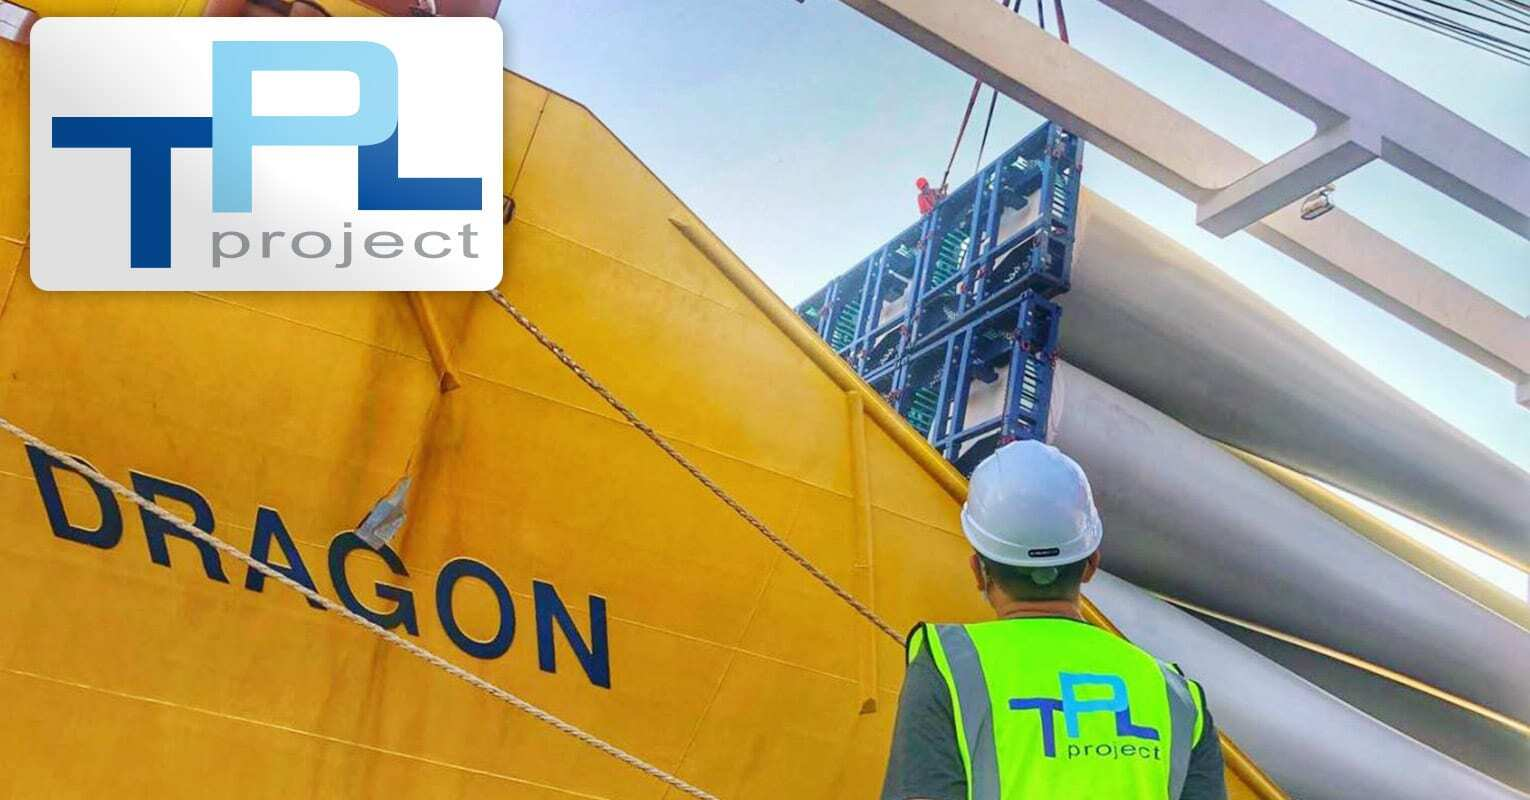 TPL Project Loaded 21 pcs of G126 Wind Turbine Blades at Shanghai Luojing Breakbulk Terminal Destined for the US Under FAS Terms